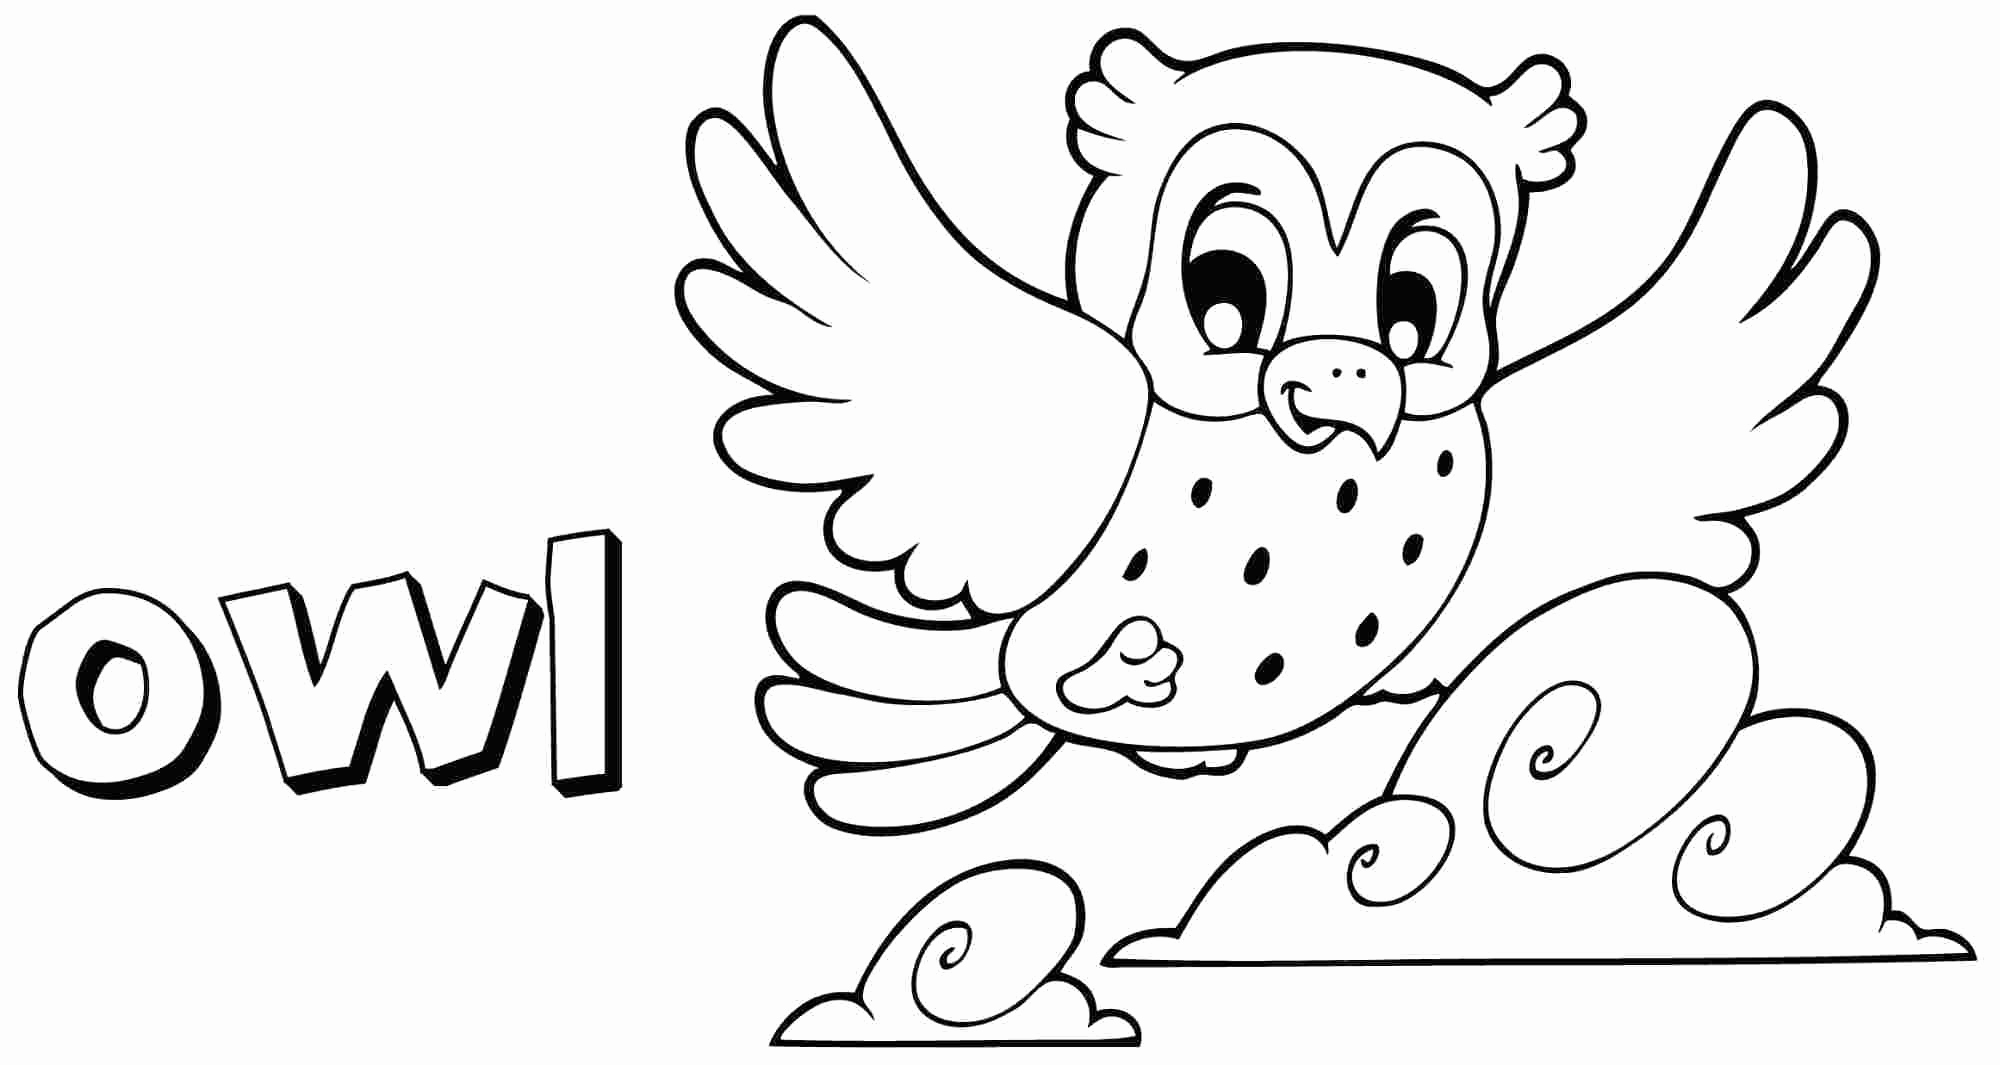 cute coloring pages of owls owl color drawing at getdrawings free download coloring cute owls of pages